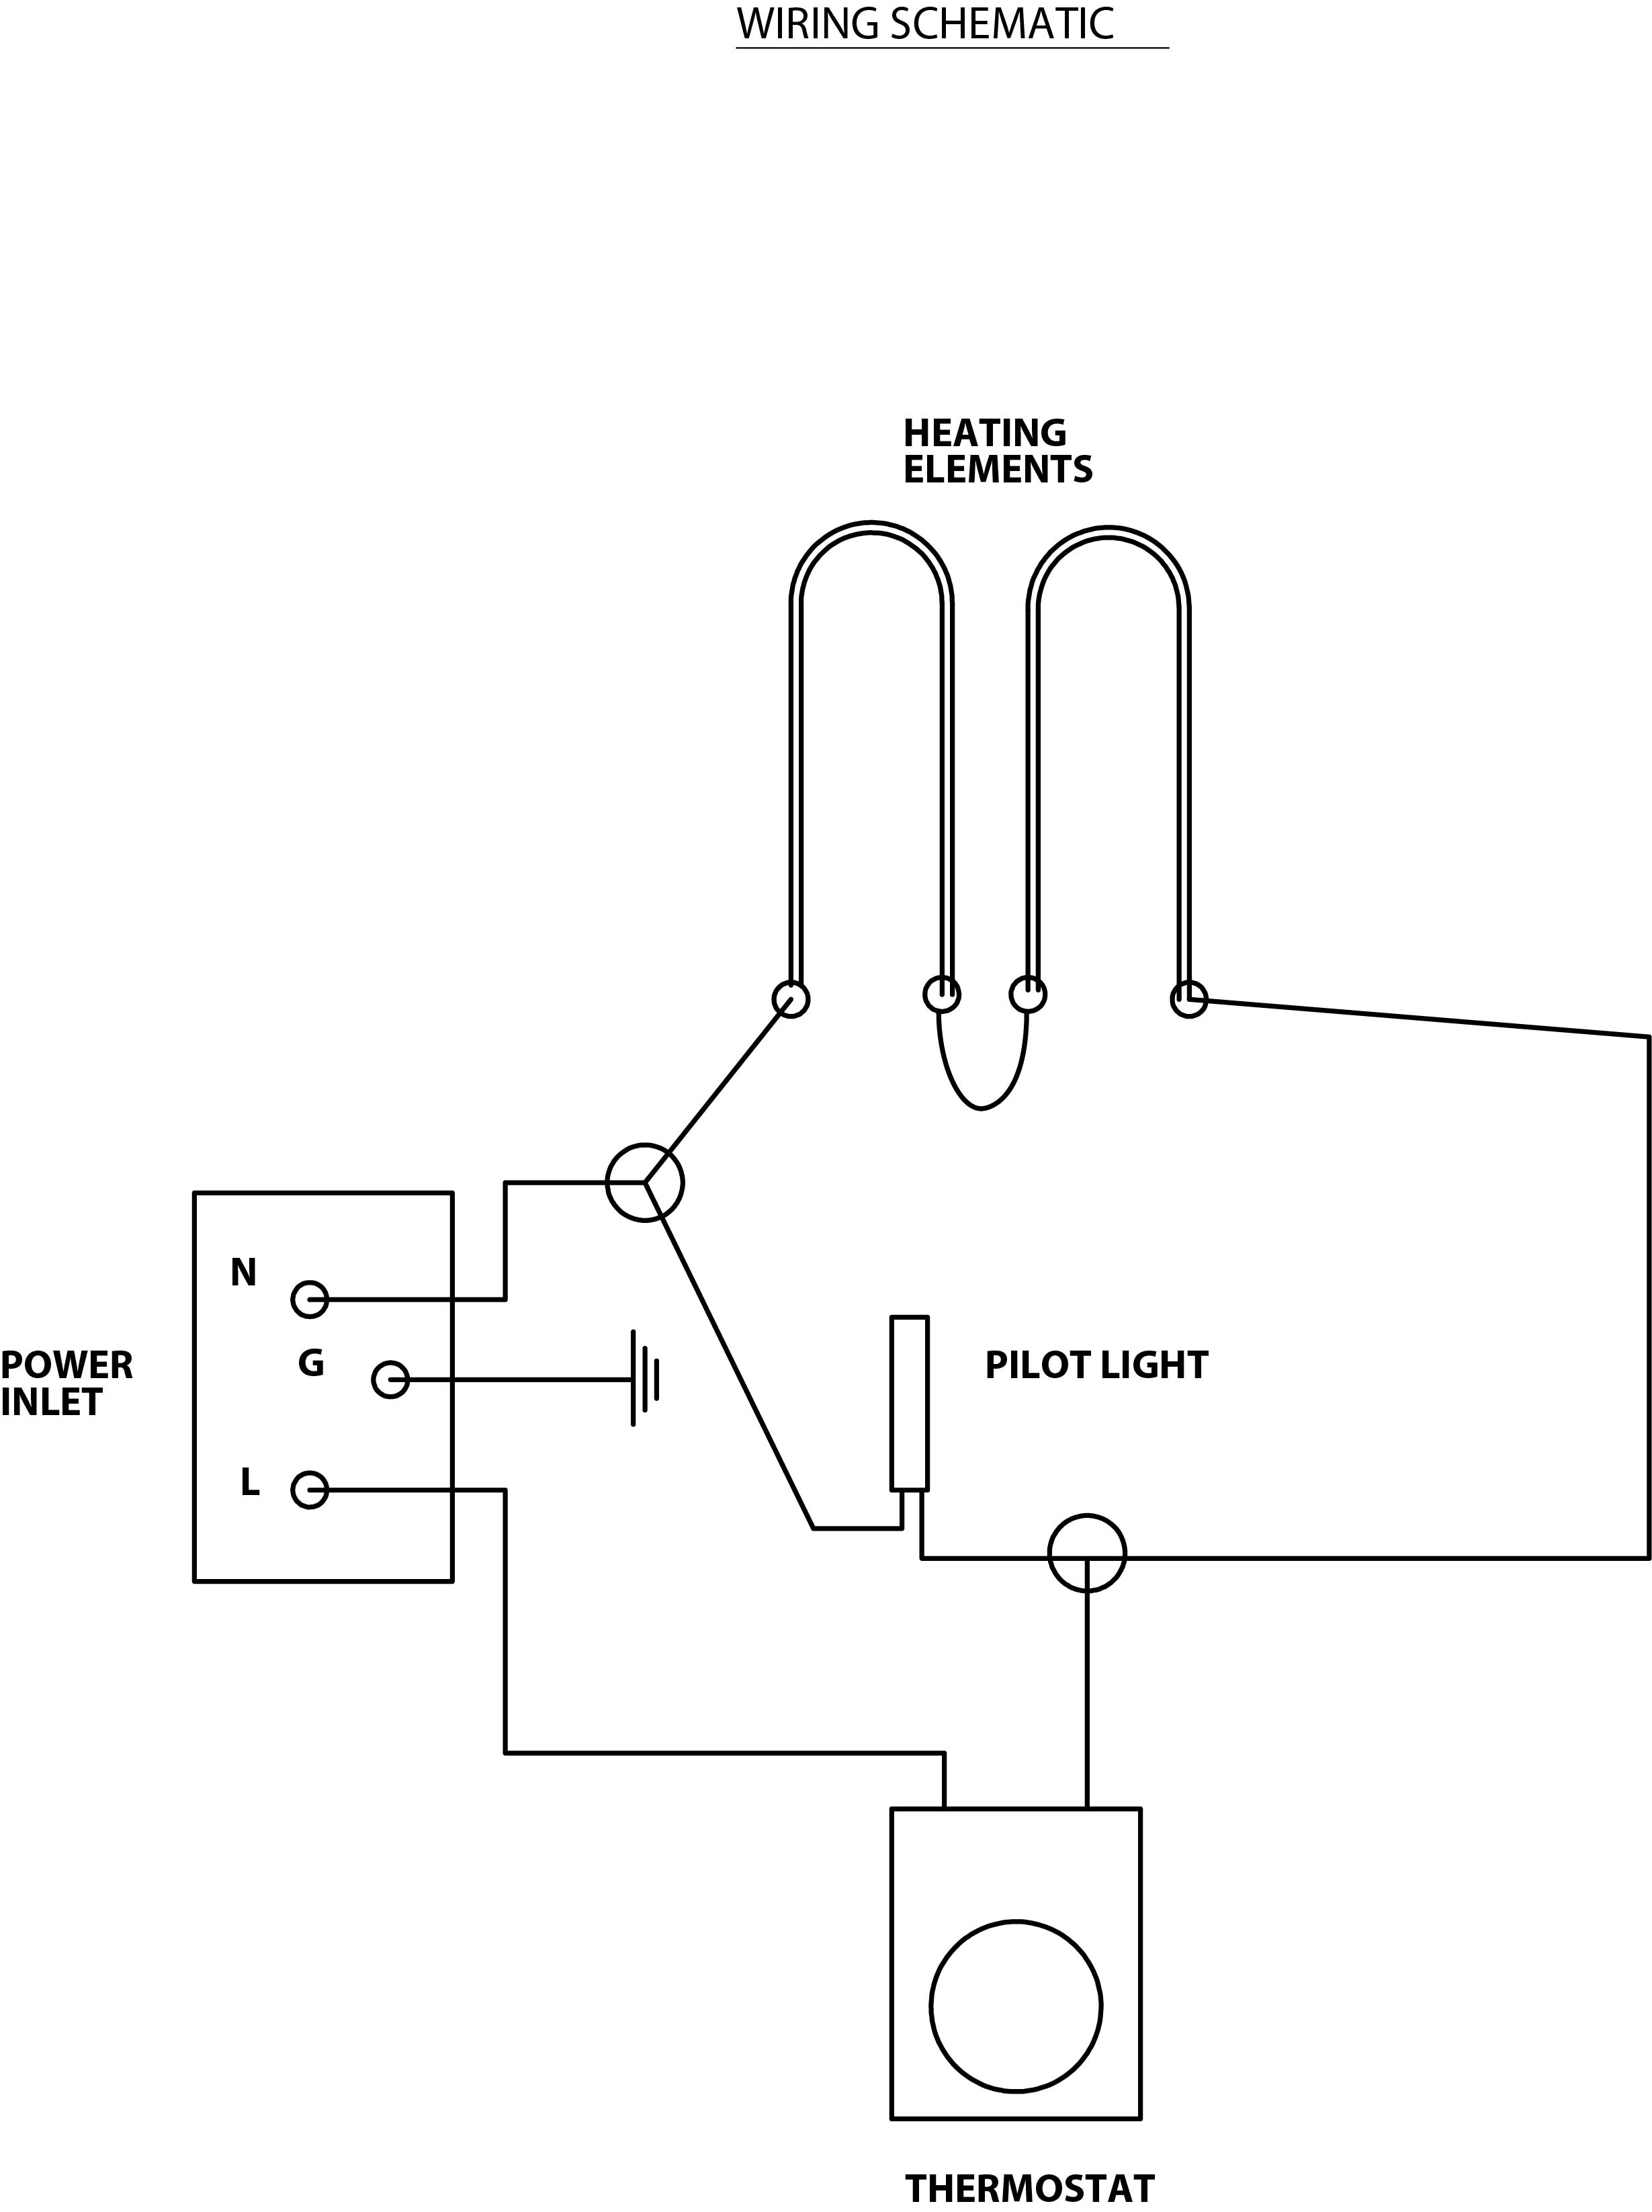 3 Phase Thermostat Diagram : 26 Wiring Diagram Images